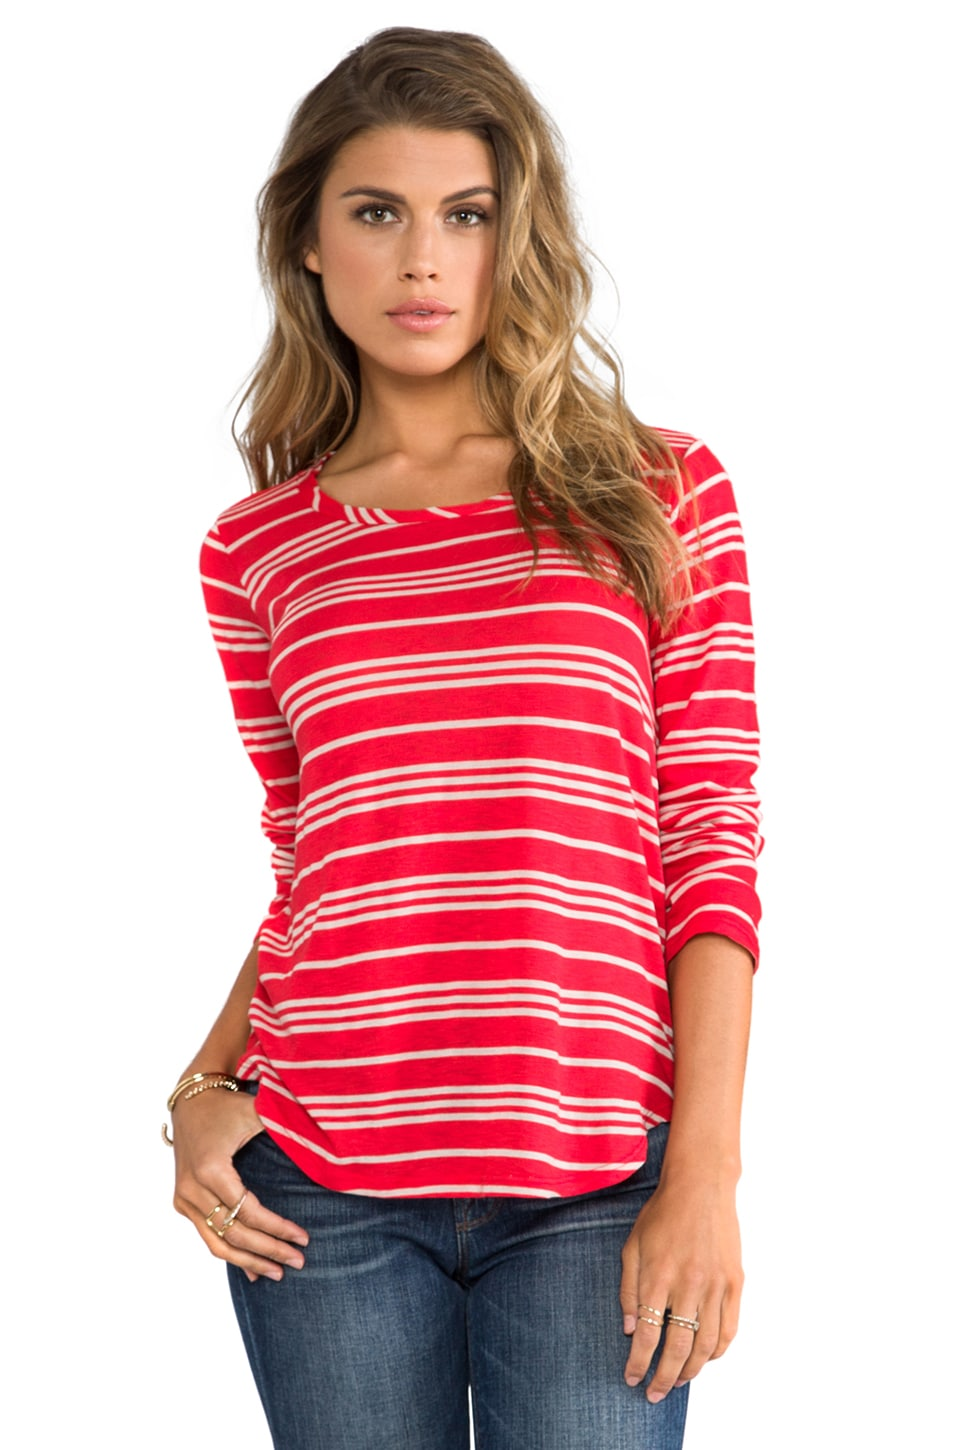 Splendid Stockholm Stripe Long Sleeve Tee in Vermillion/Camel